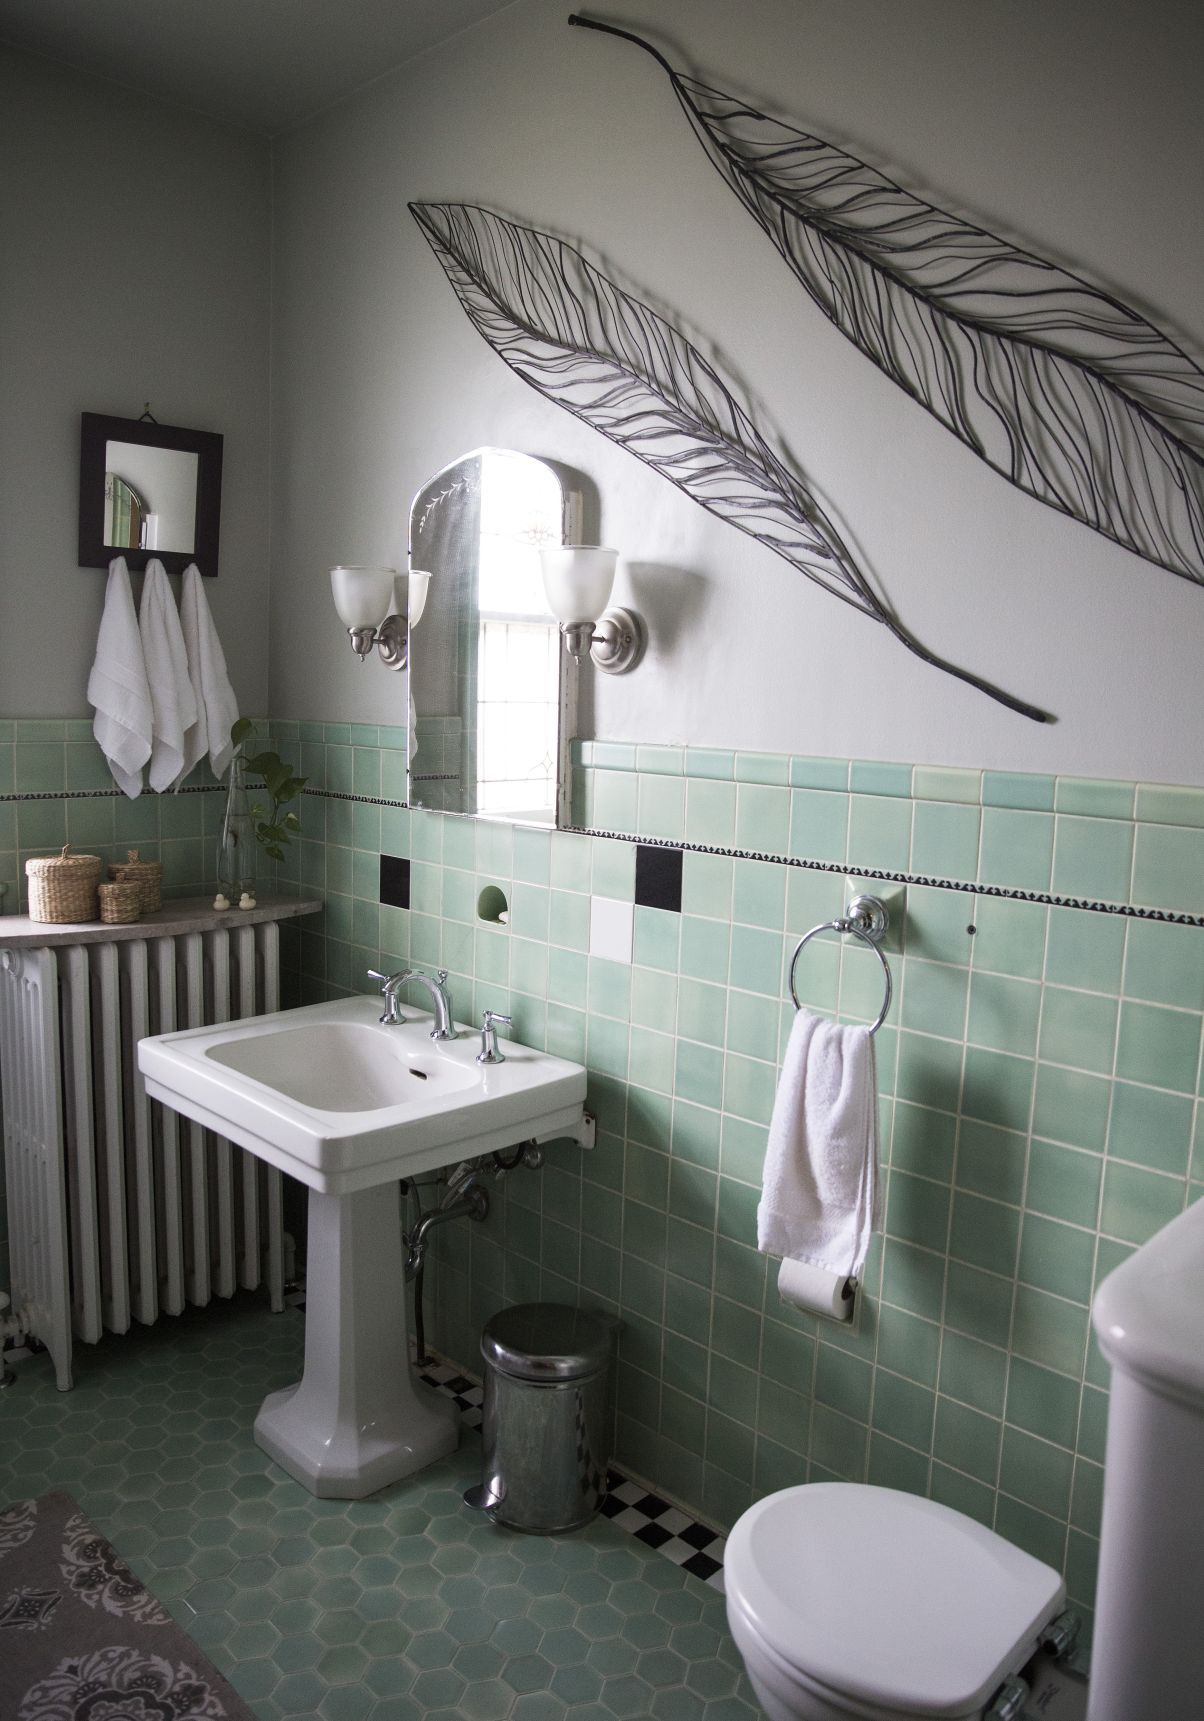 19 bathrooms we love from our u0027at